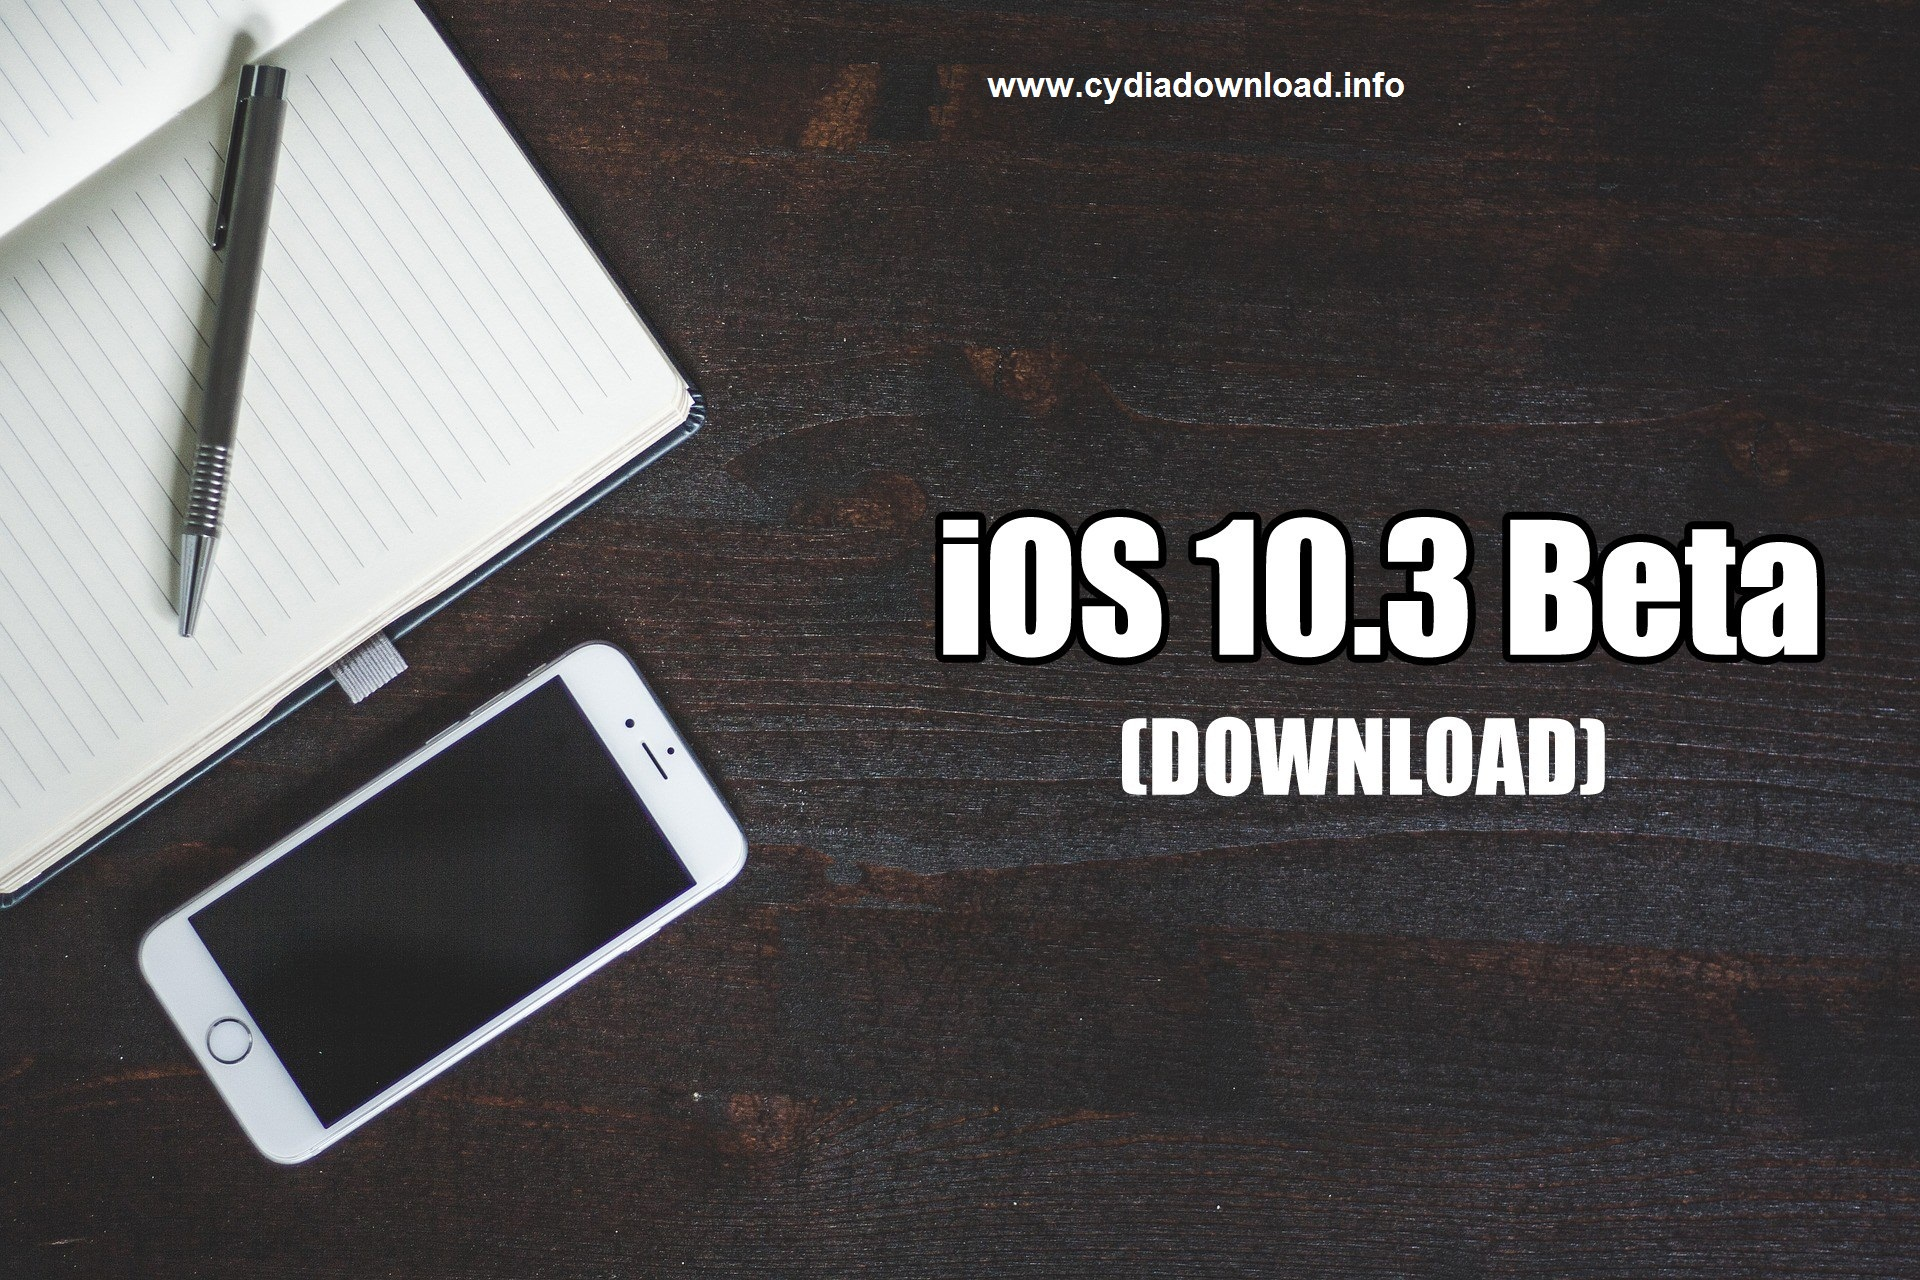 IOS 10.3 download